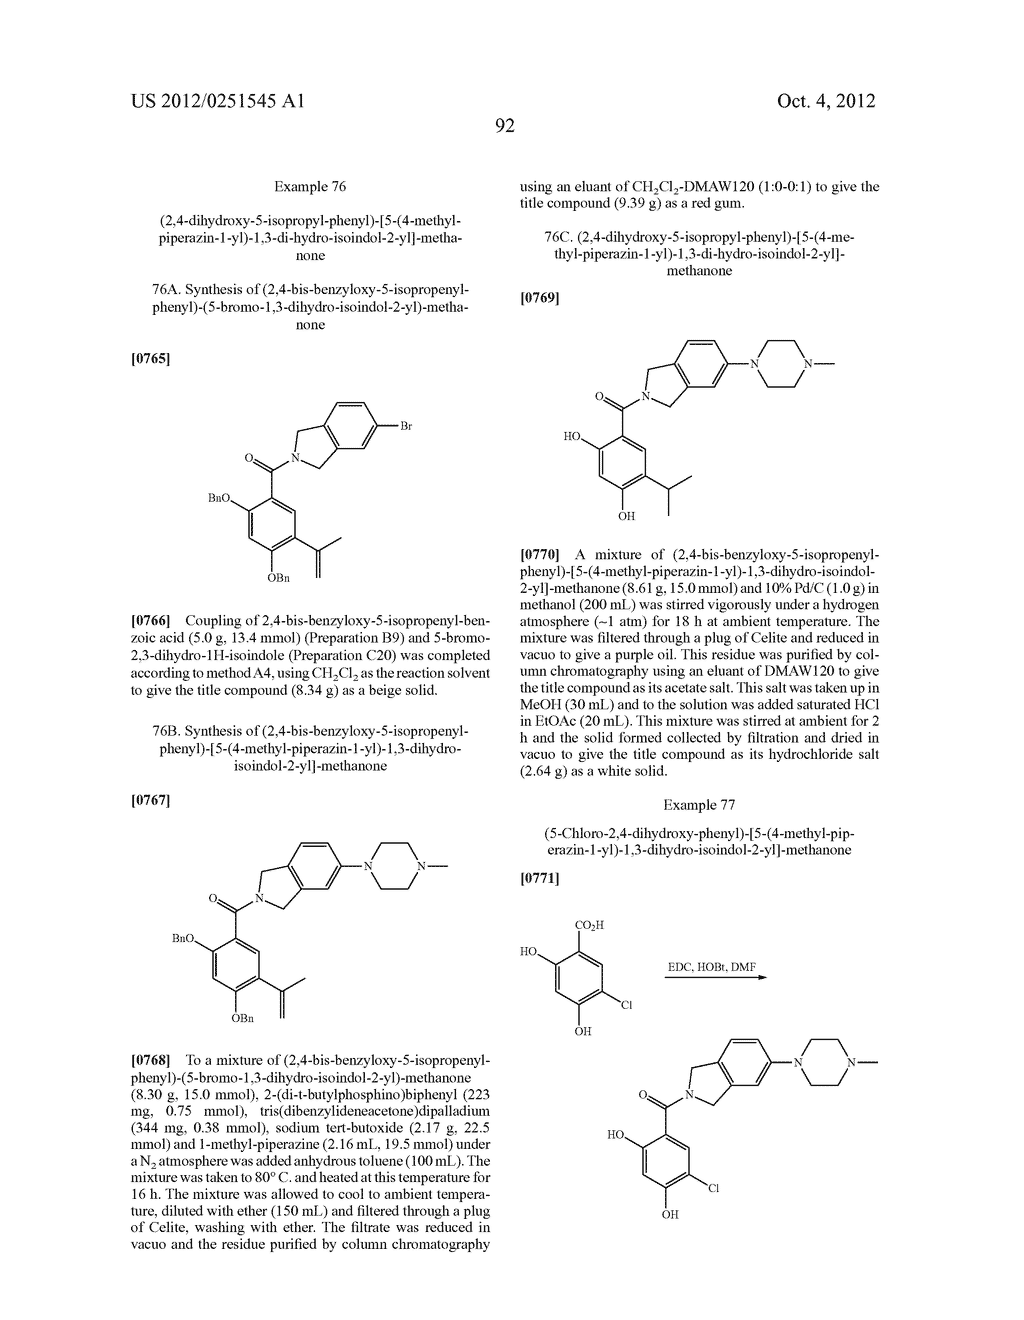 Therapeutic Combinations Of Hydroxybenzamide Derivatives As Inhibitors Of     HSP90 - diagram, schematic, and image 93